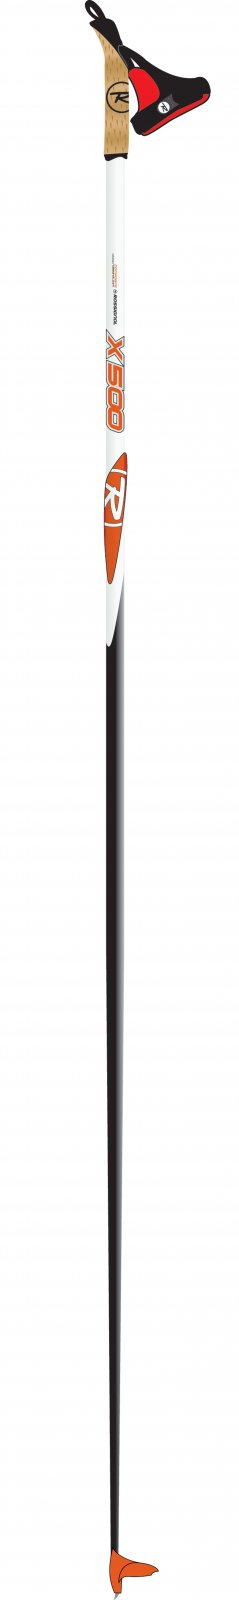 Rossignol X-500 Cross Country Poles